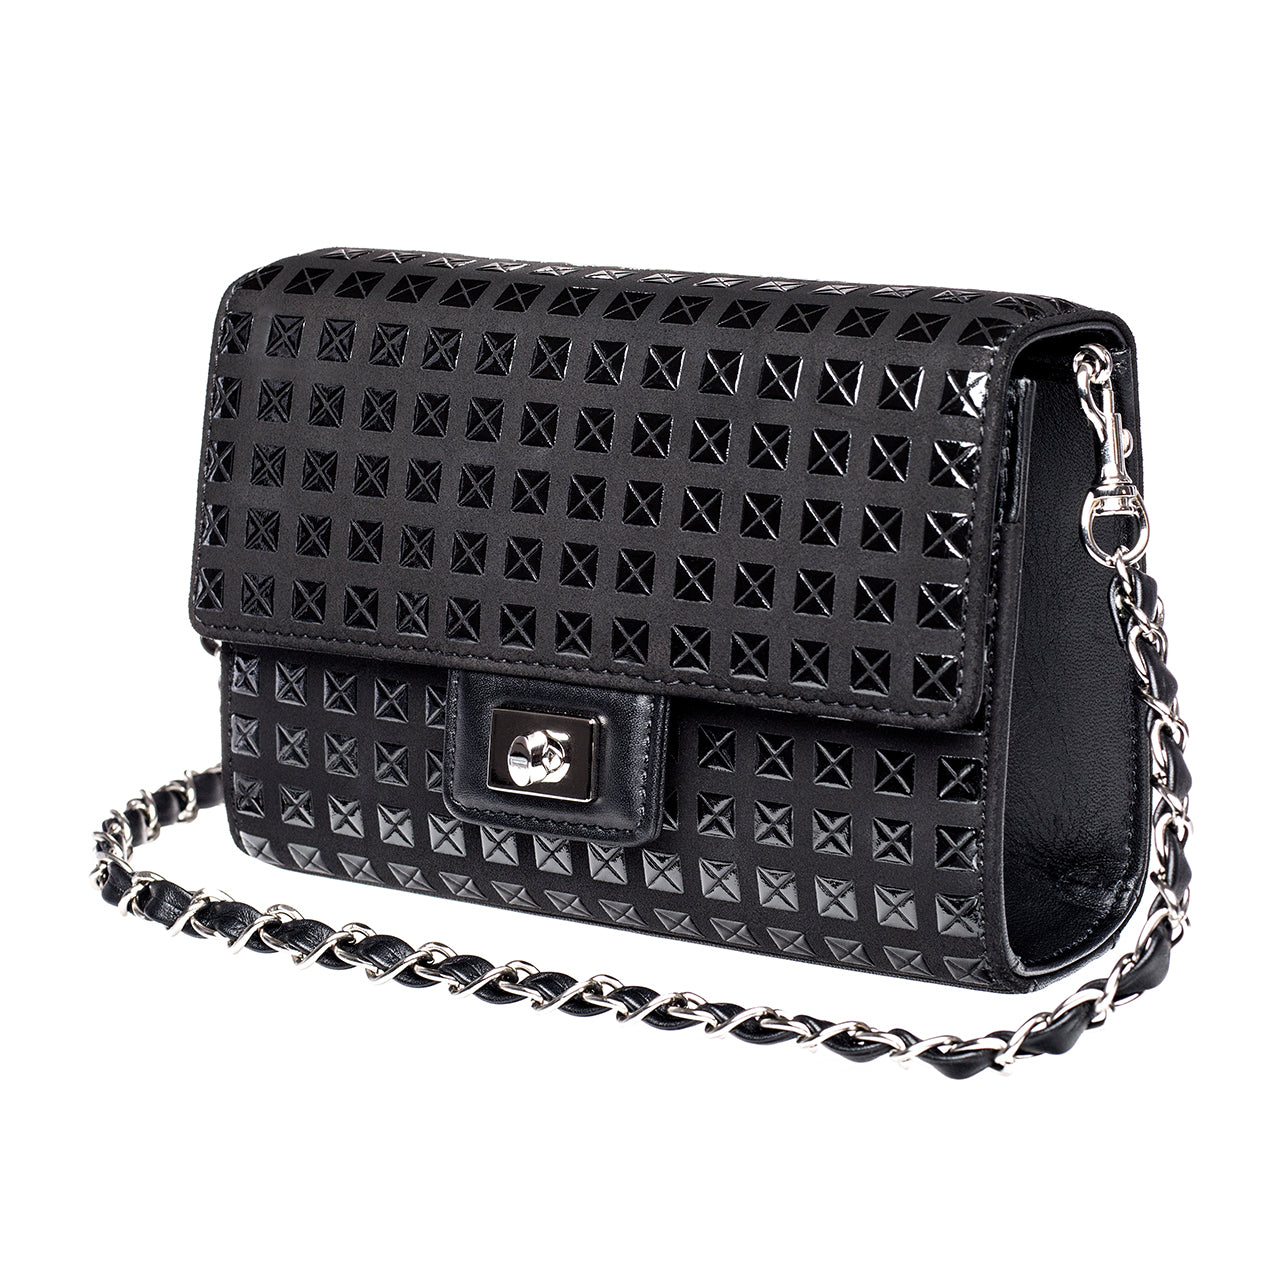 INDEN Cross-Body Bag Rectangle Studs Blk x Blk